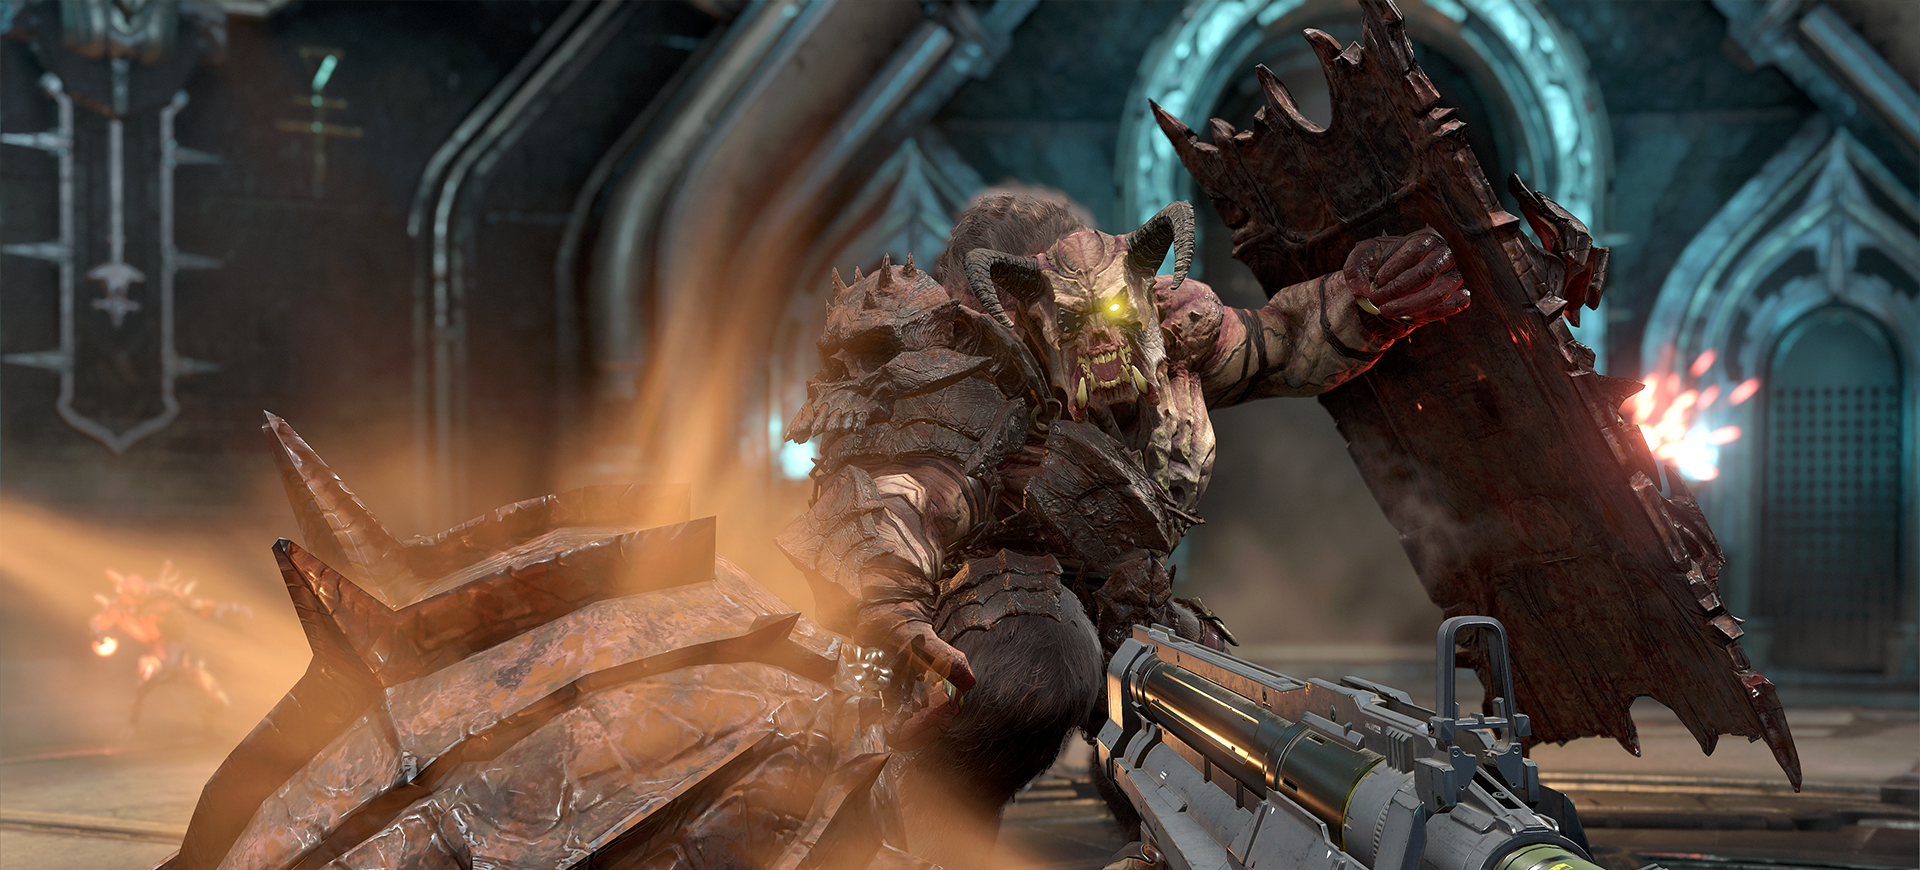 Doom Eternal Launch Details Hi, you know when you shoot an enemy (in for example doom3) and a blood texture appears at the location where you hit him, how is this done? doom eternal launch details